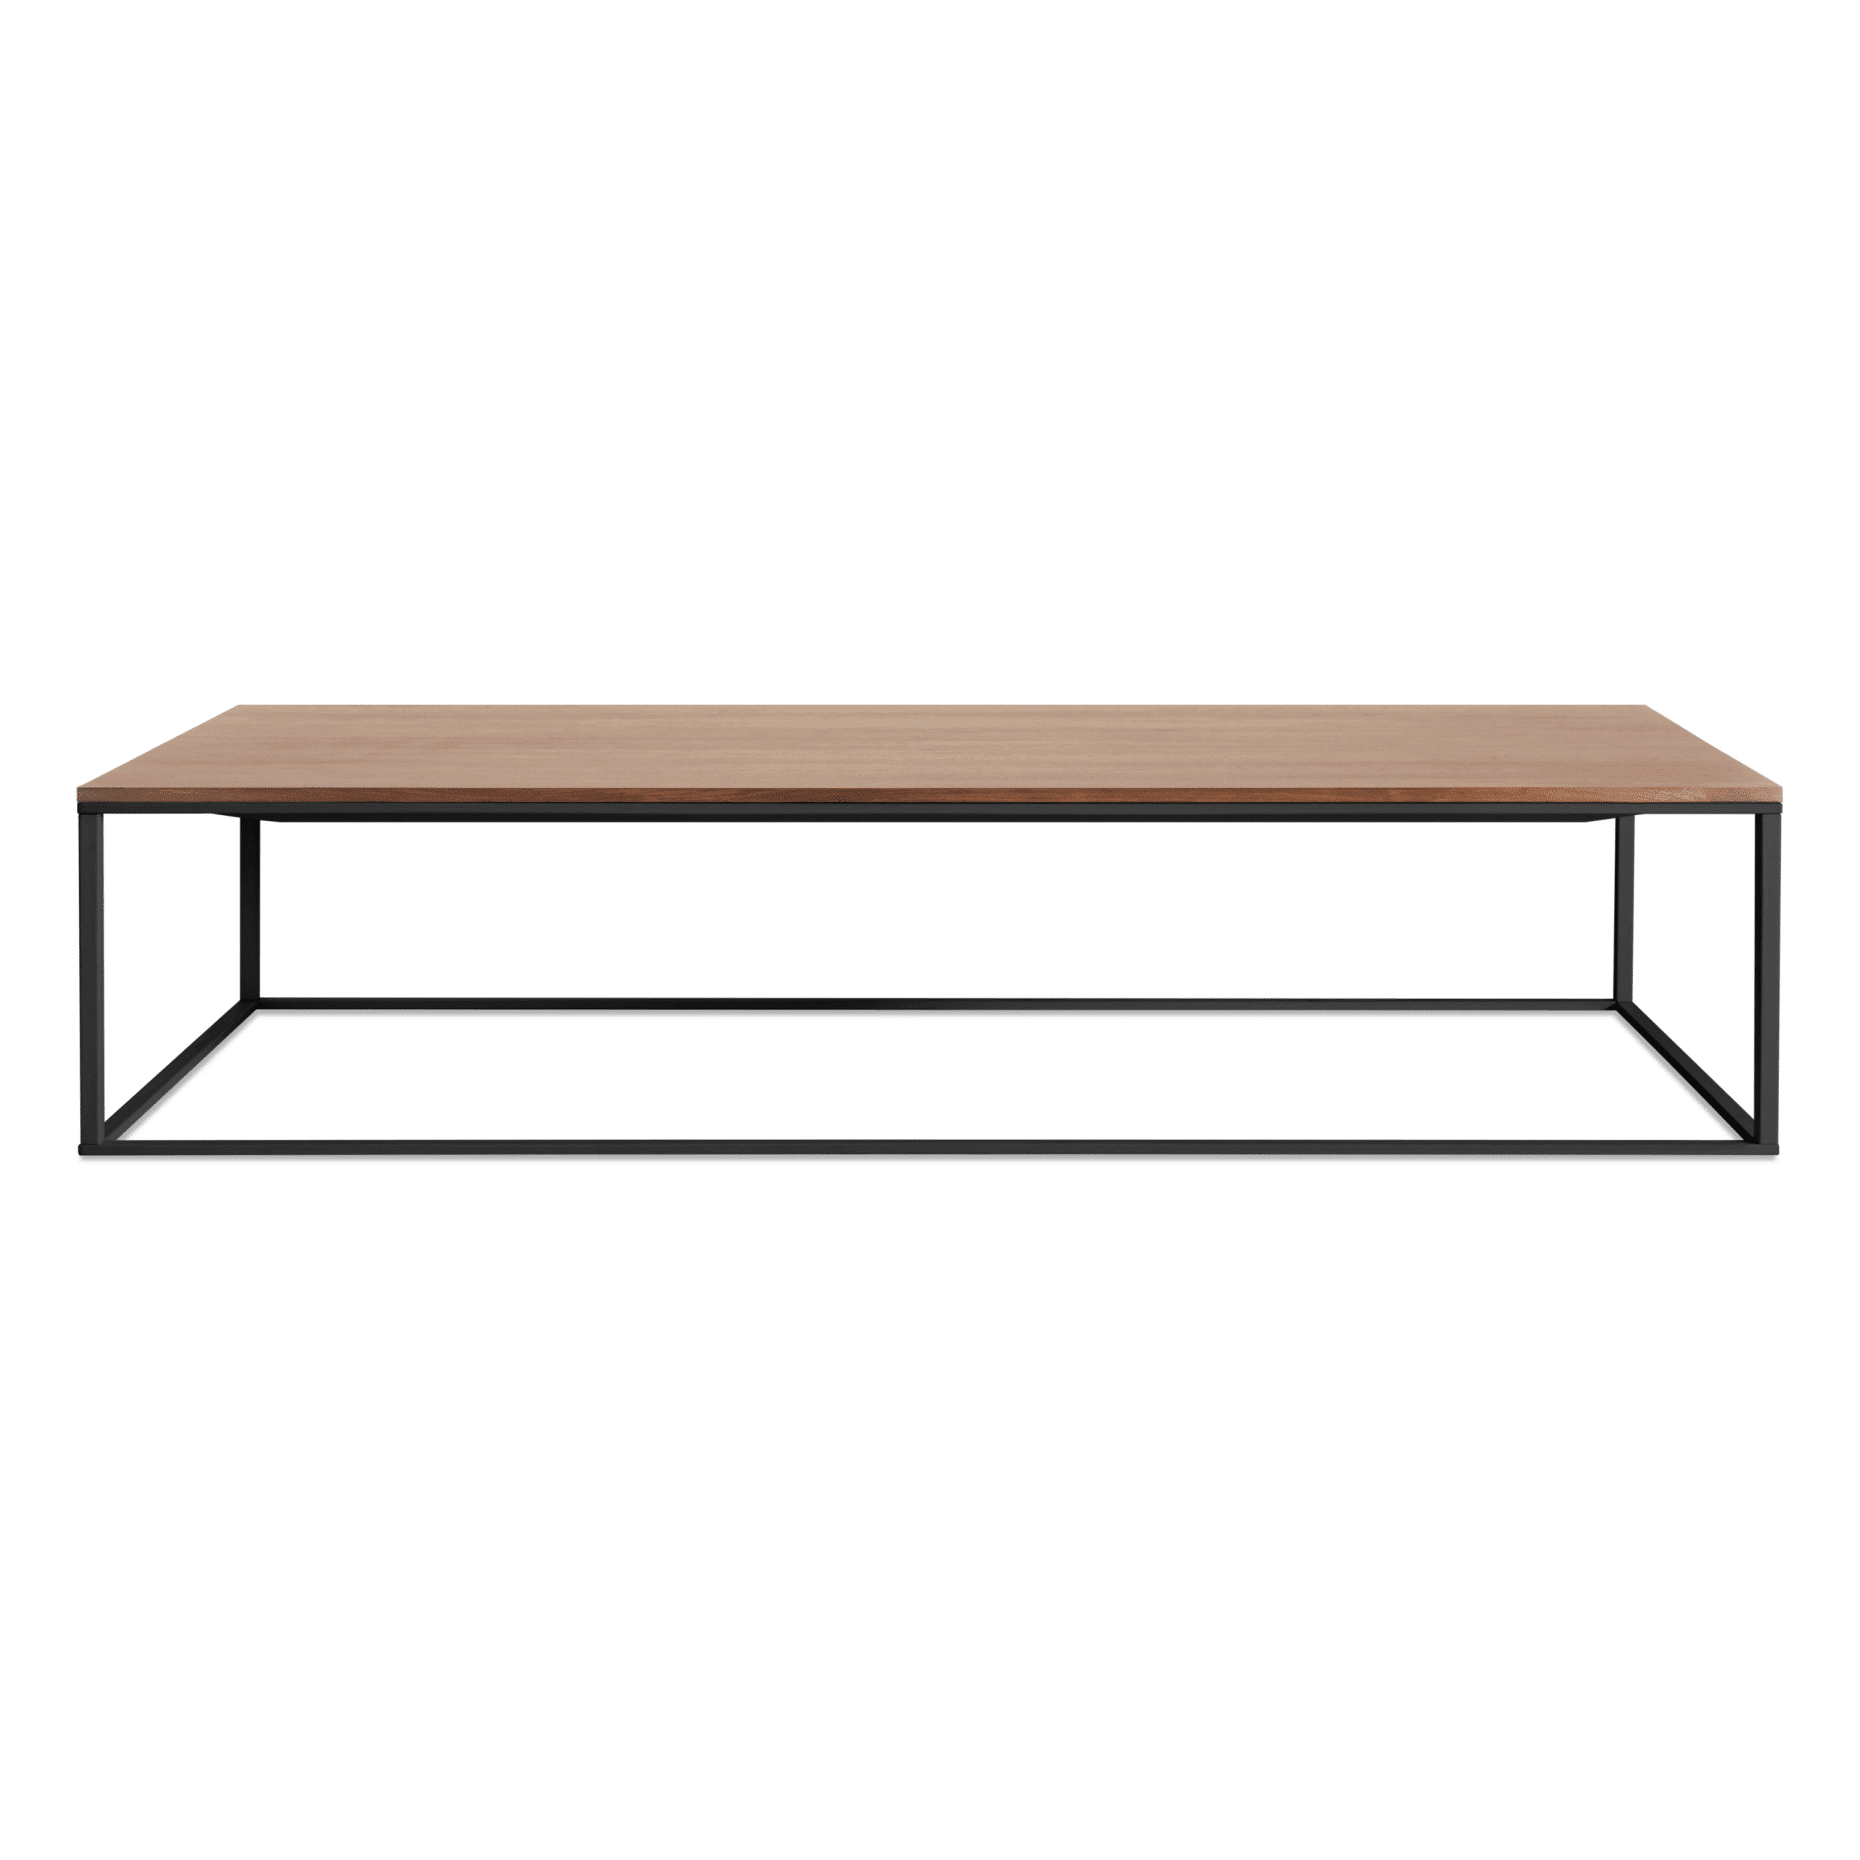 mn1 lcofbk wl minimalista large coffee table black walnut